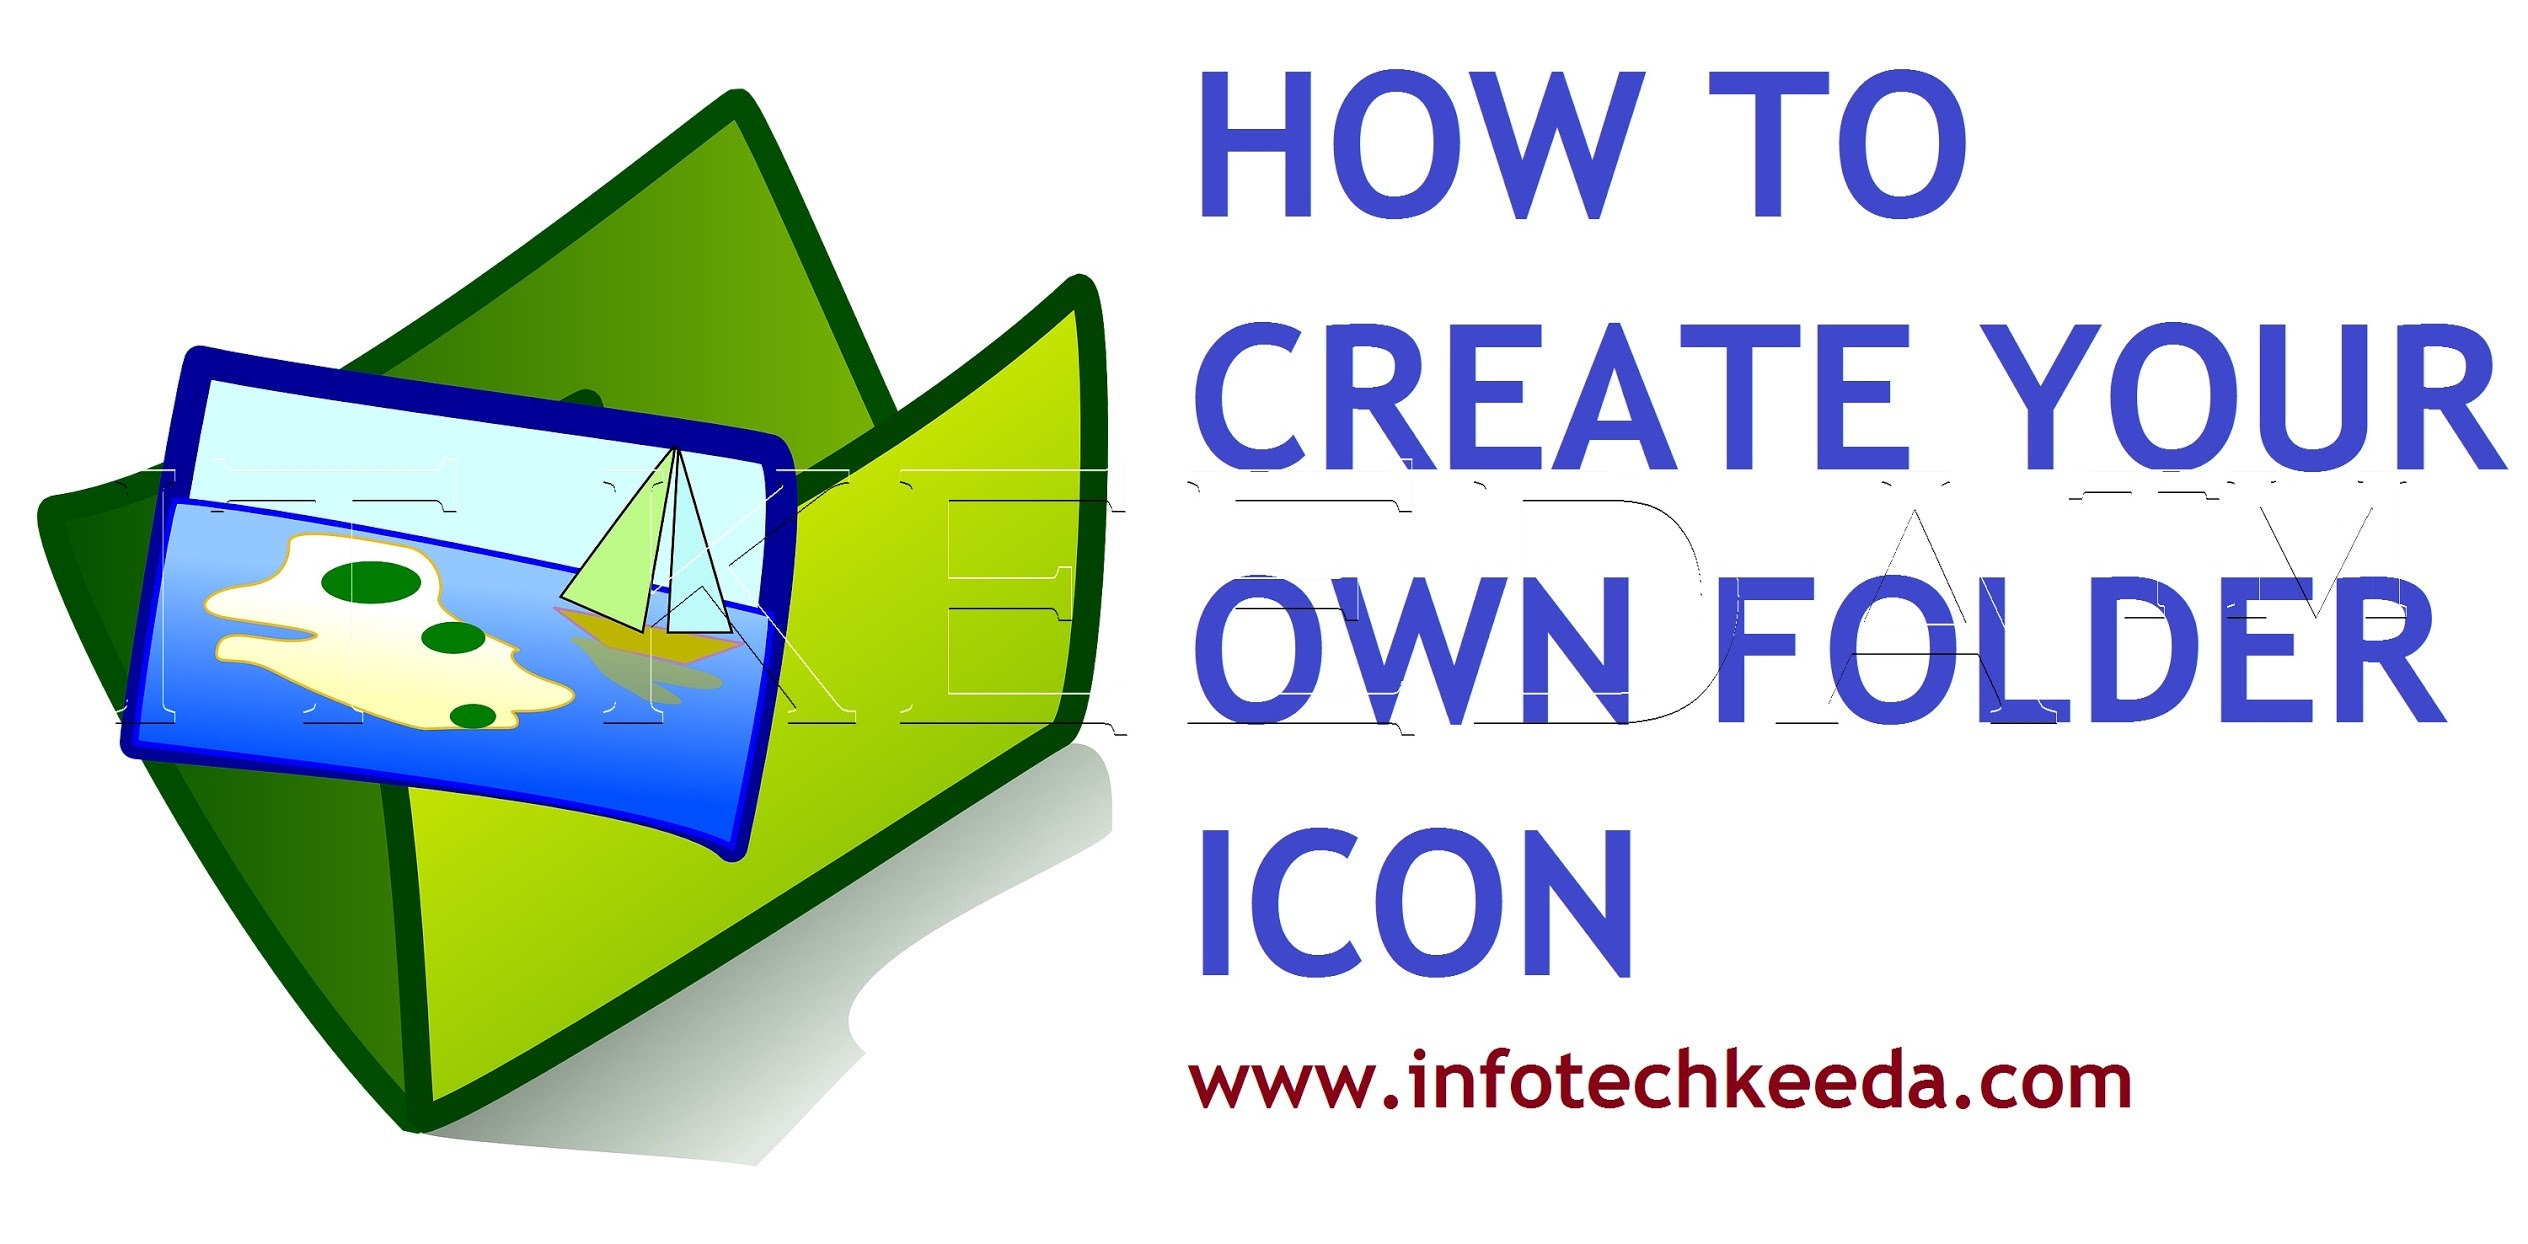 How to create your own photo as a folder icon 3